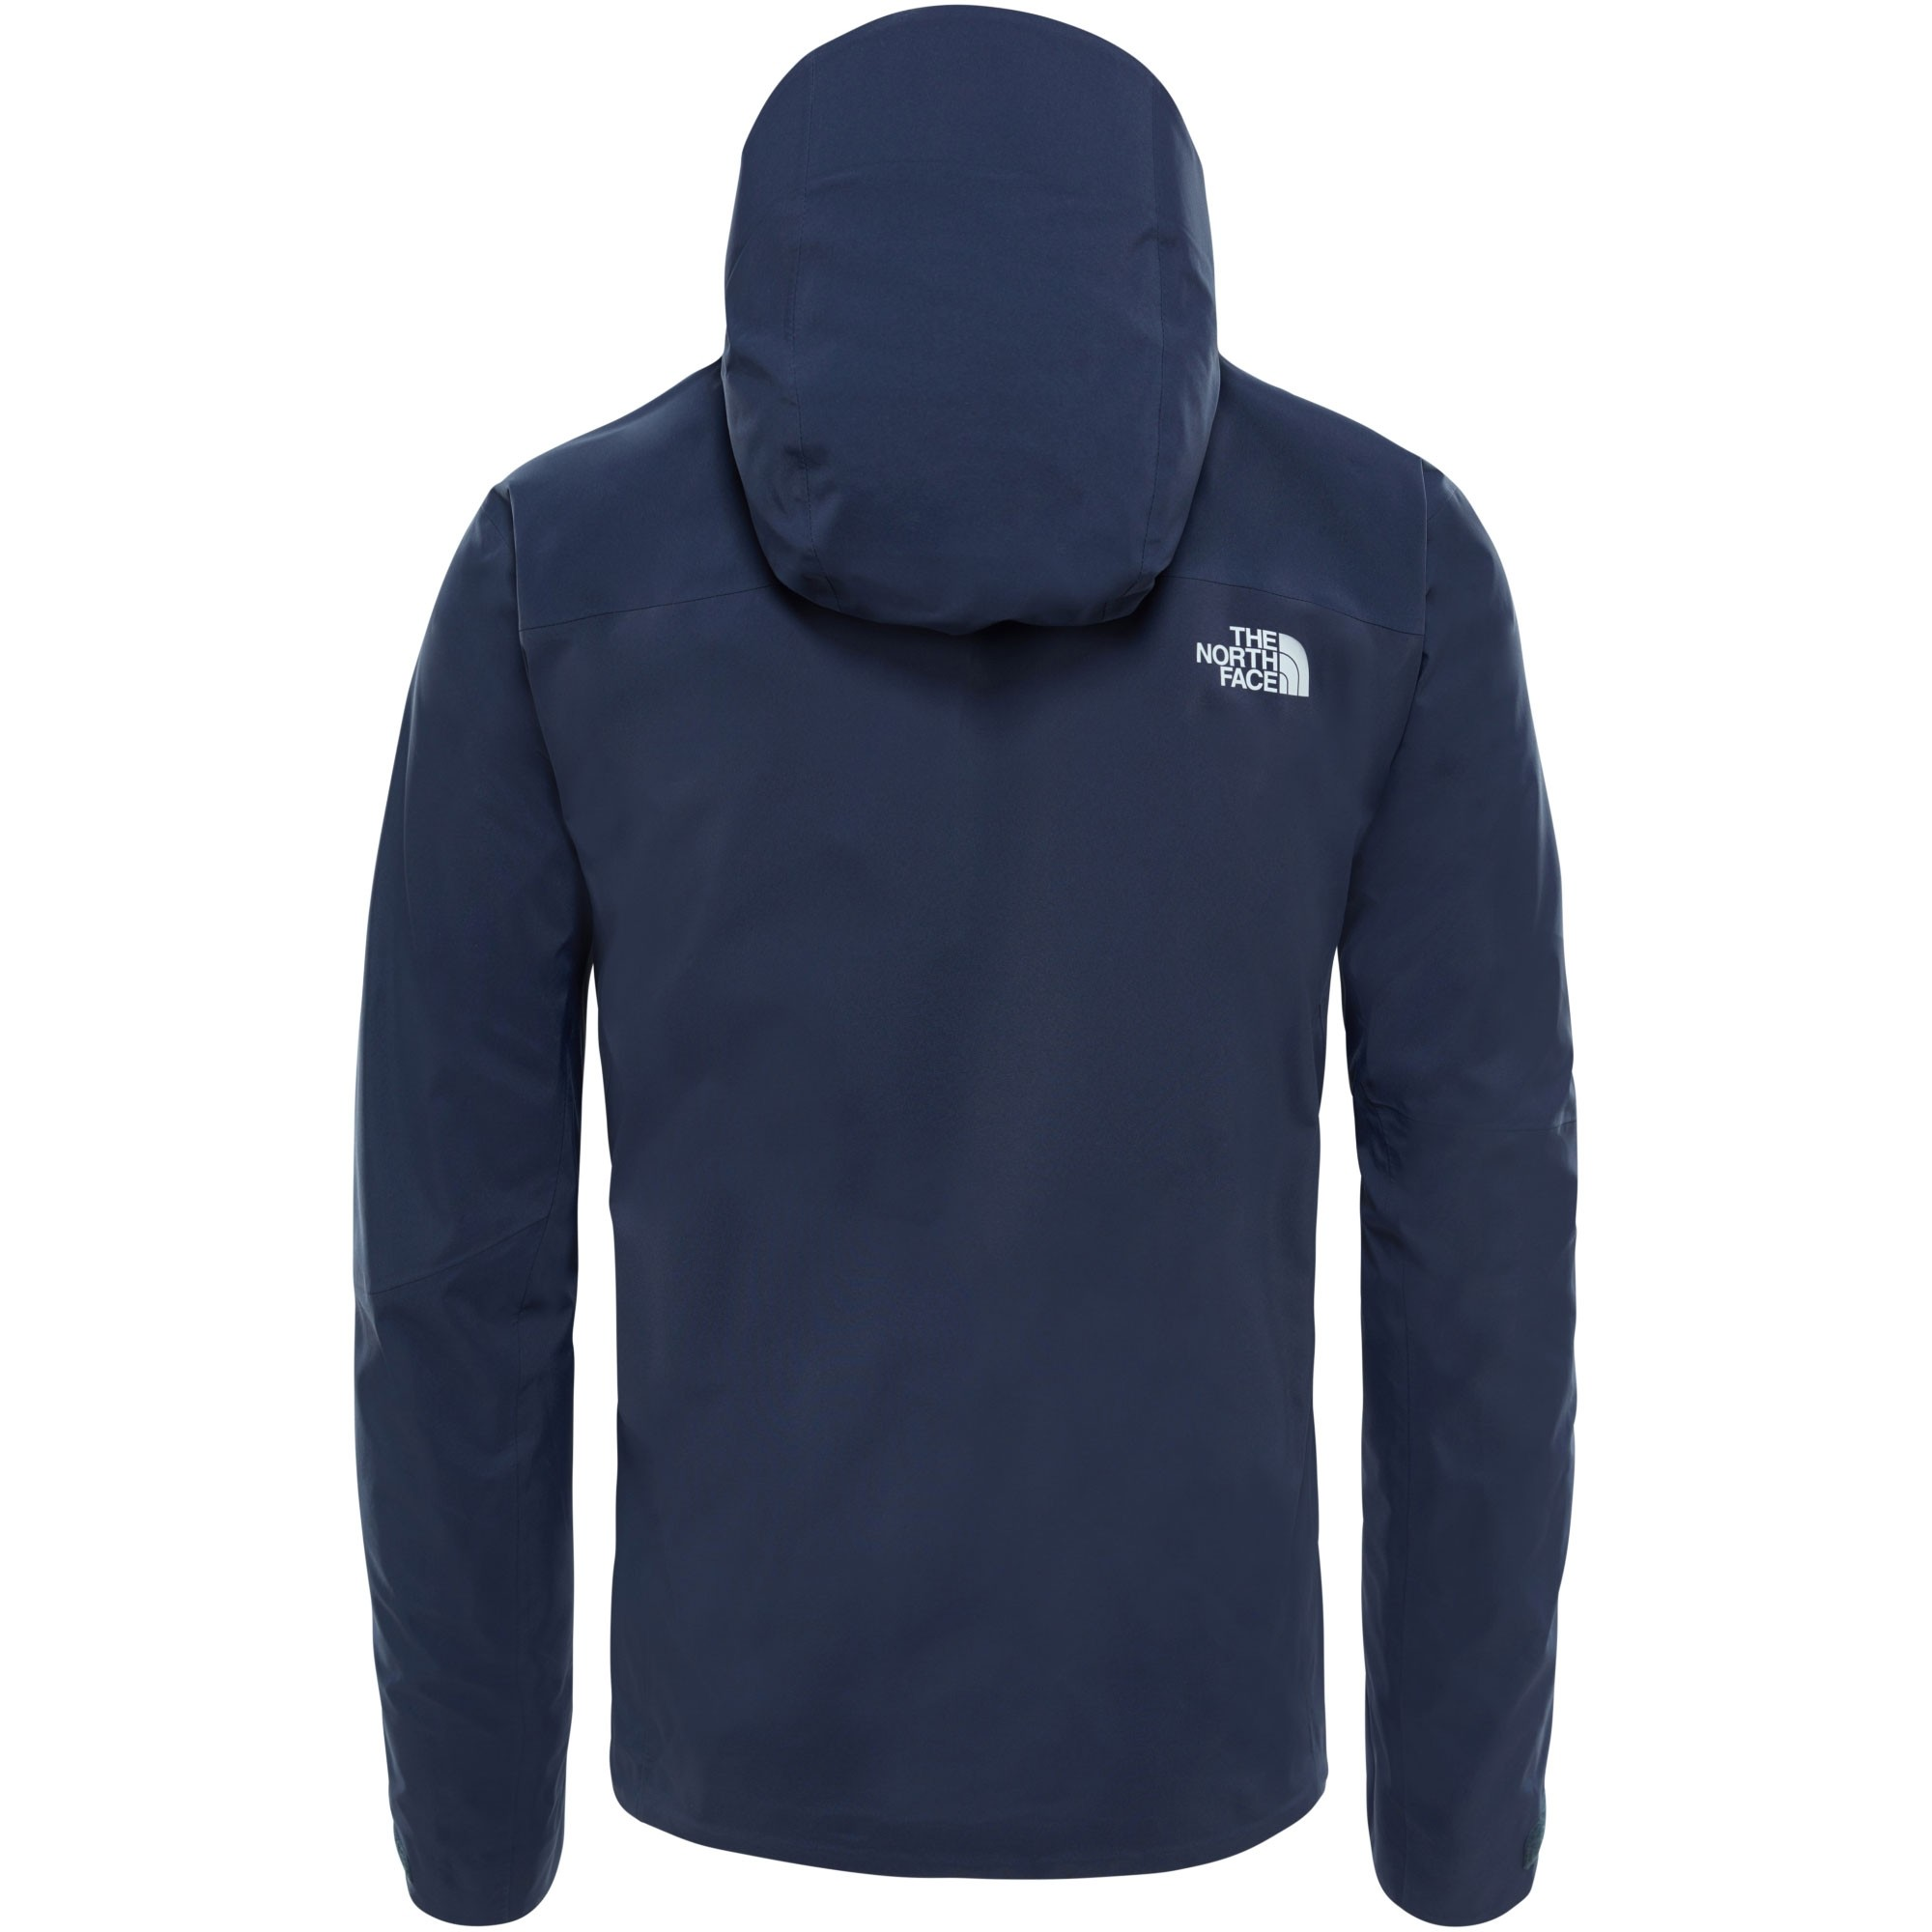 The-North-Face-Mens-Point-Five-GTX-Jacket-Urban-Navy-1-W17